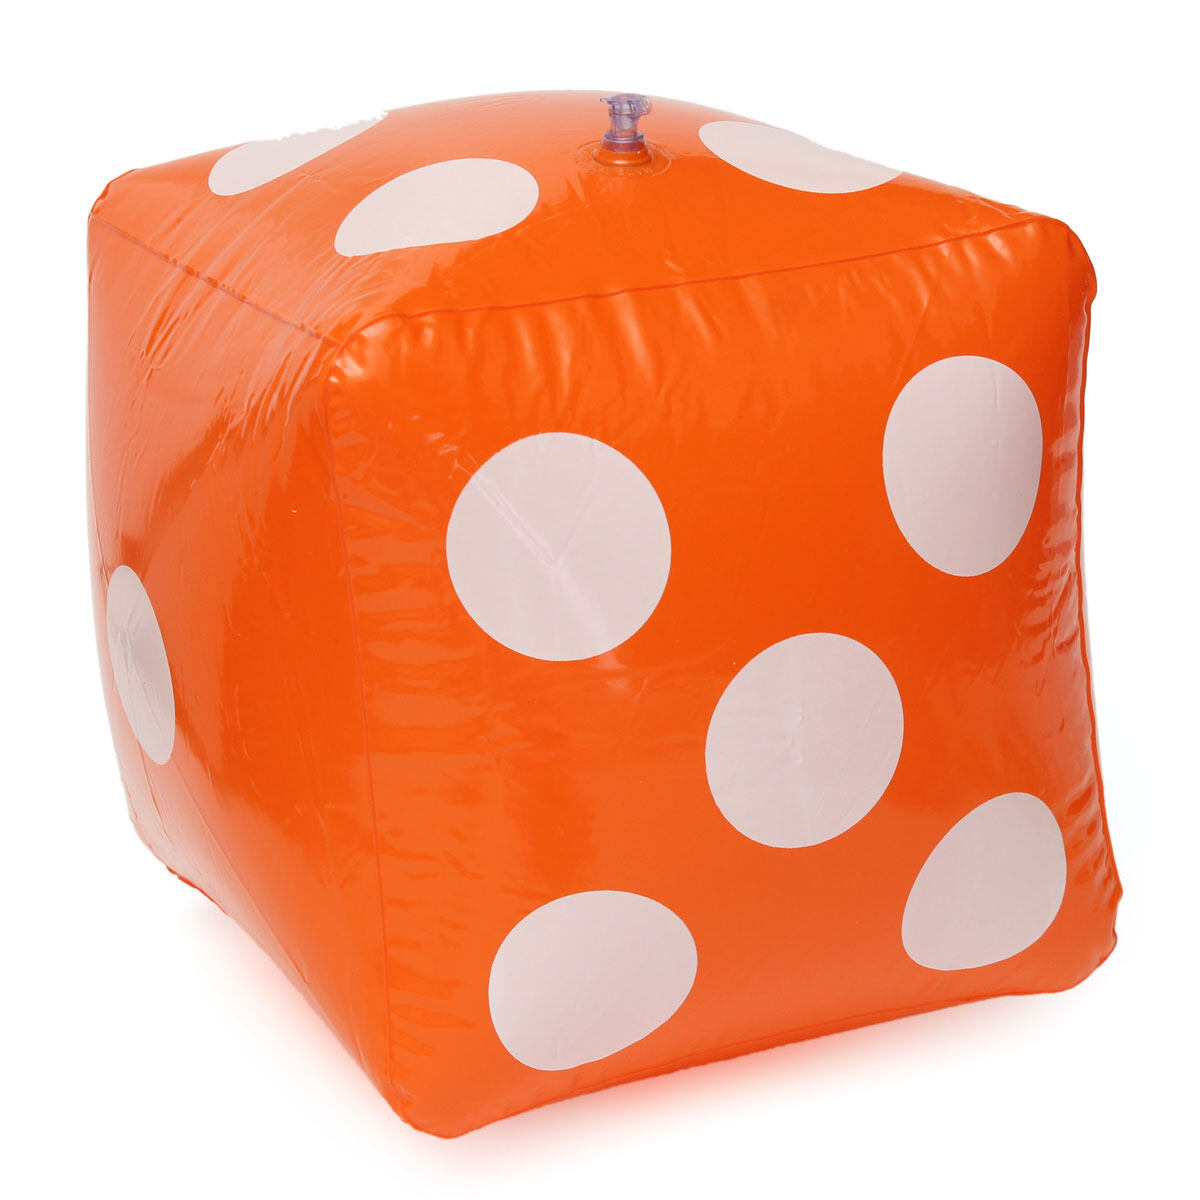 30*30cm Giant Inflatable Air Number Dice Outdoor Beach Toy ...